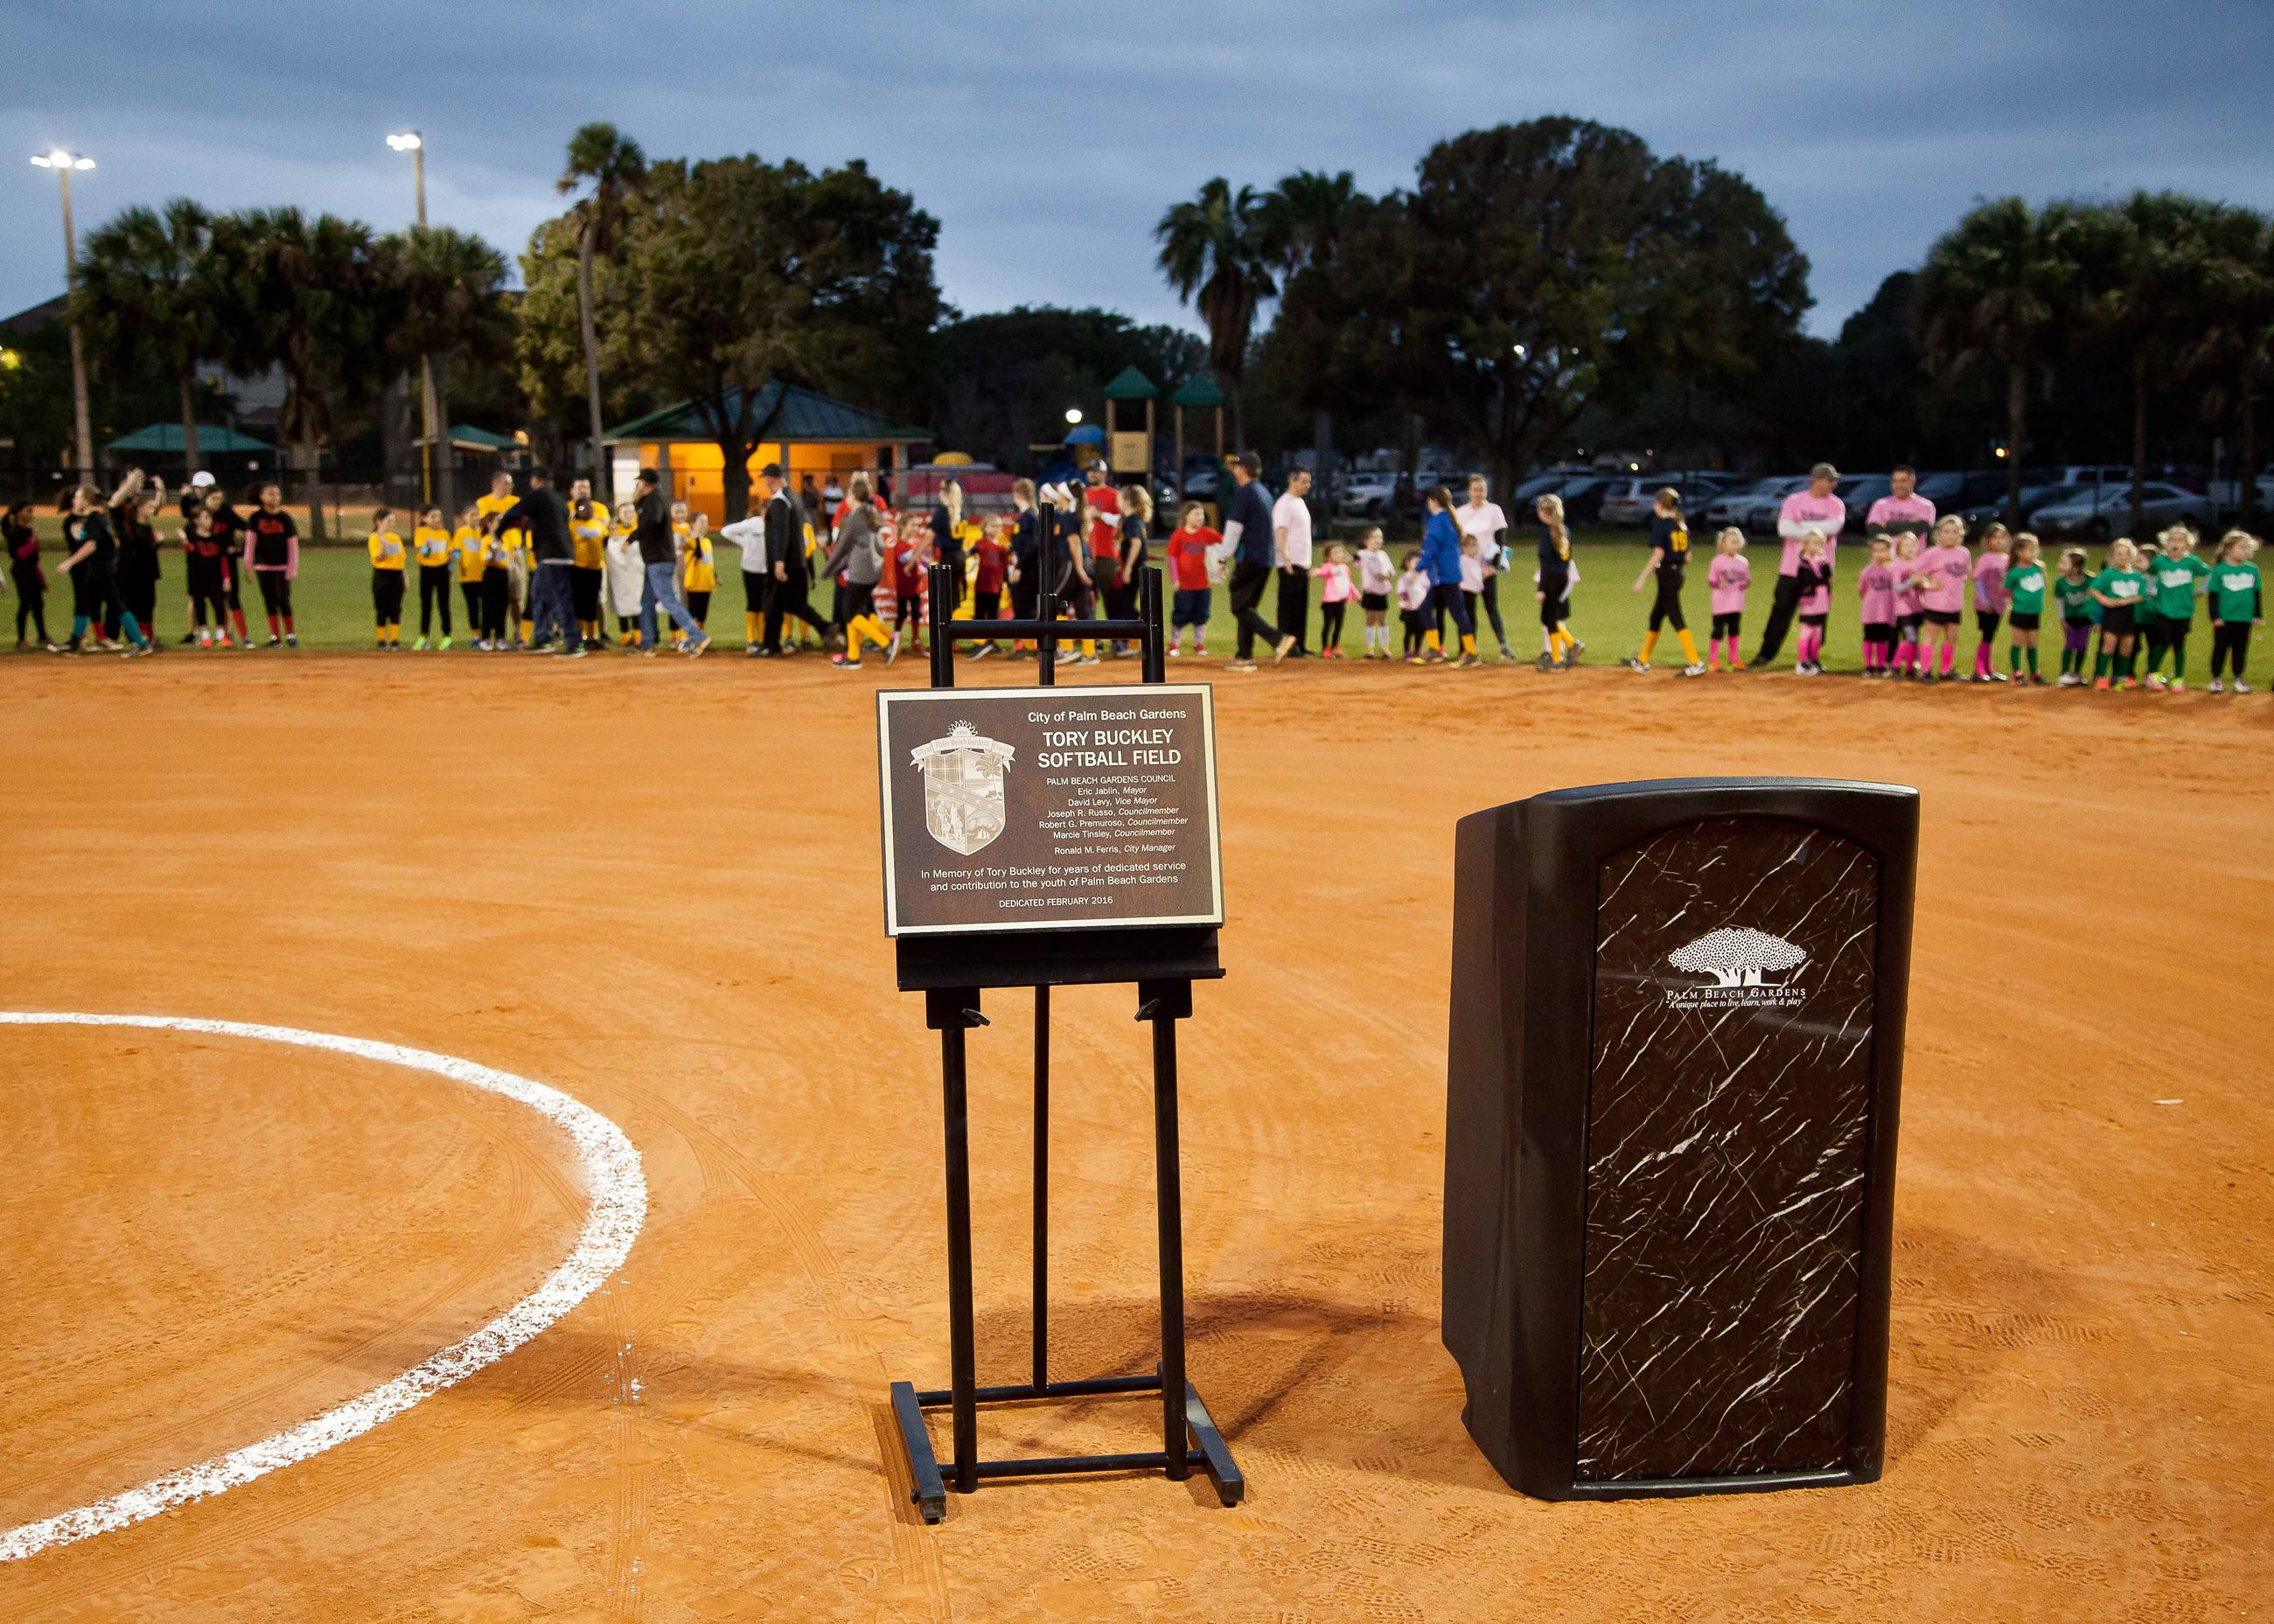 A podium and plaque on the softball field